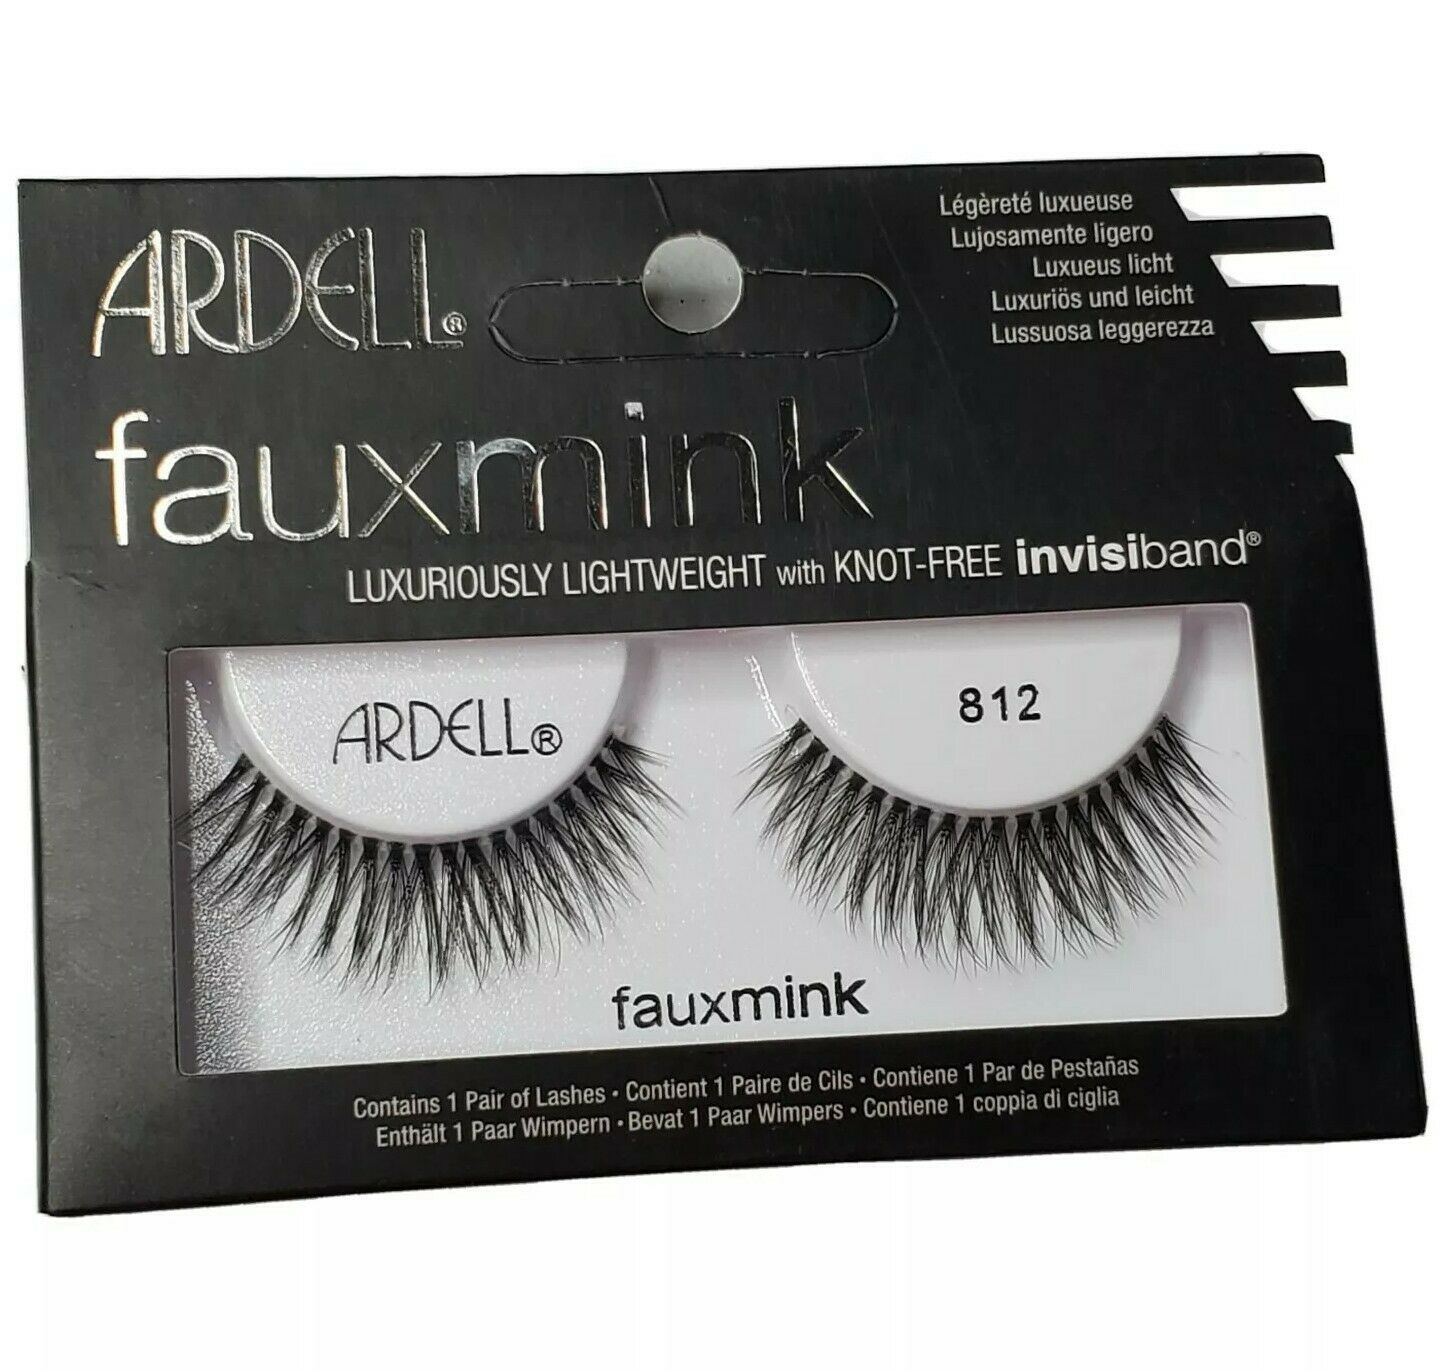 Ardell FauxMink Luxuriously Lightweight Lashes #812 Knot Free Invisiband - $11.76